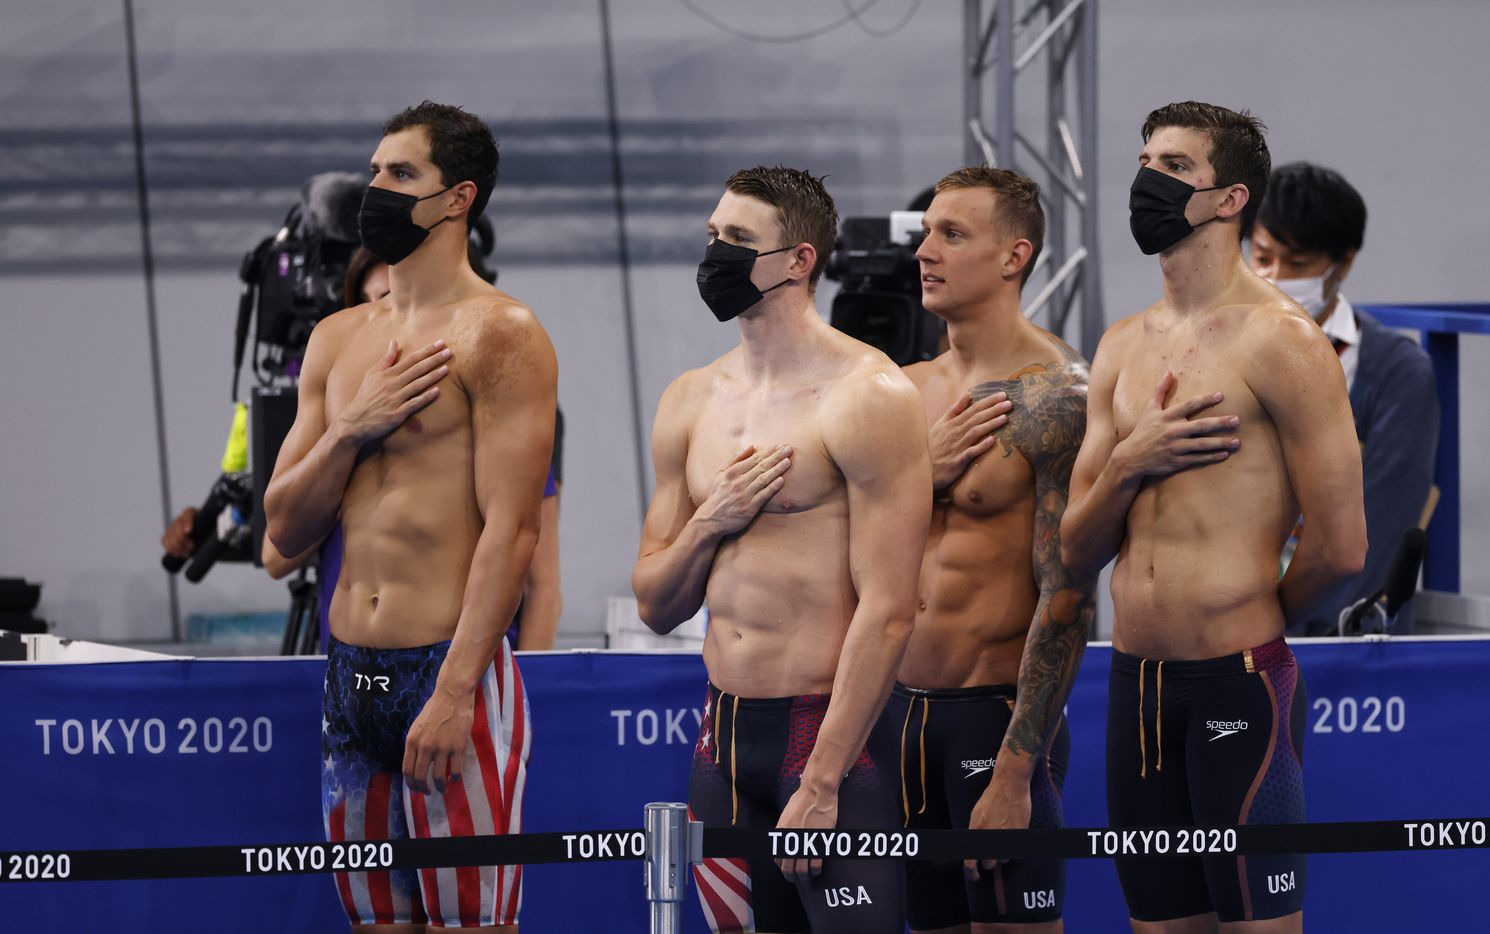 USA's Michael Andrew,  Ryan Murphy, Caeleb Dressel, and Zach Apple of the men's 4x100 meter medley relay team during the playing of the national anthem for gold medal winner Robert Finke during the men's 1500 meter freestyle medal ceremony at the postponed 2020 Tokyo Olympics at Tokyo Aquatics Centre, on Sunday, August 1, 2021, in Tokyo, Japan. (Vernon Bryant/The Dallas Morning News)